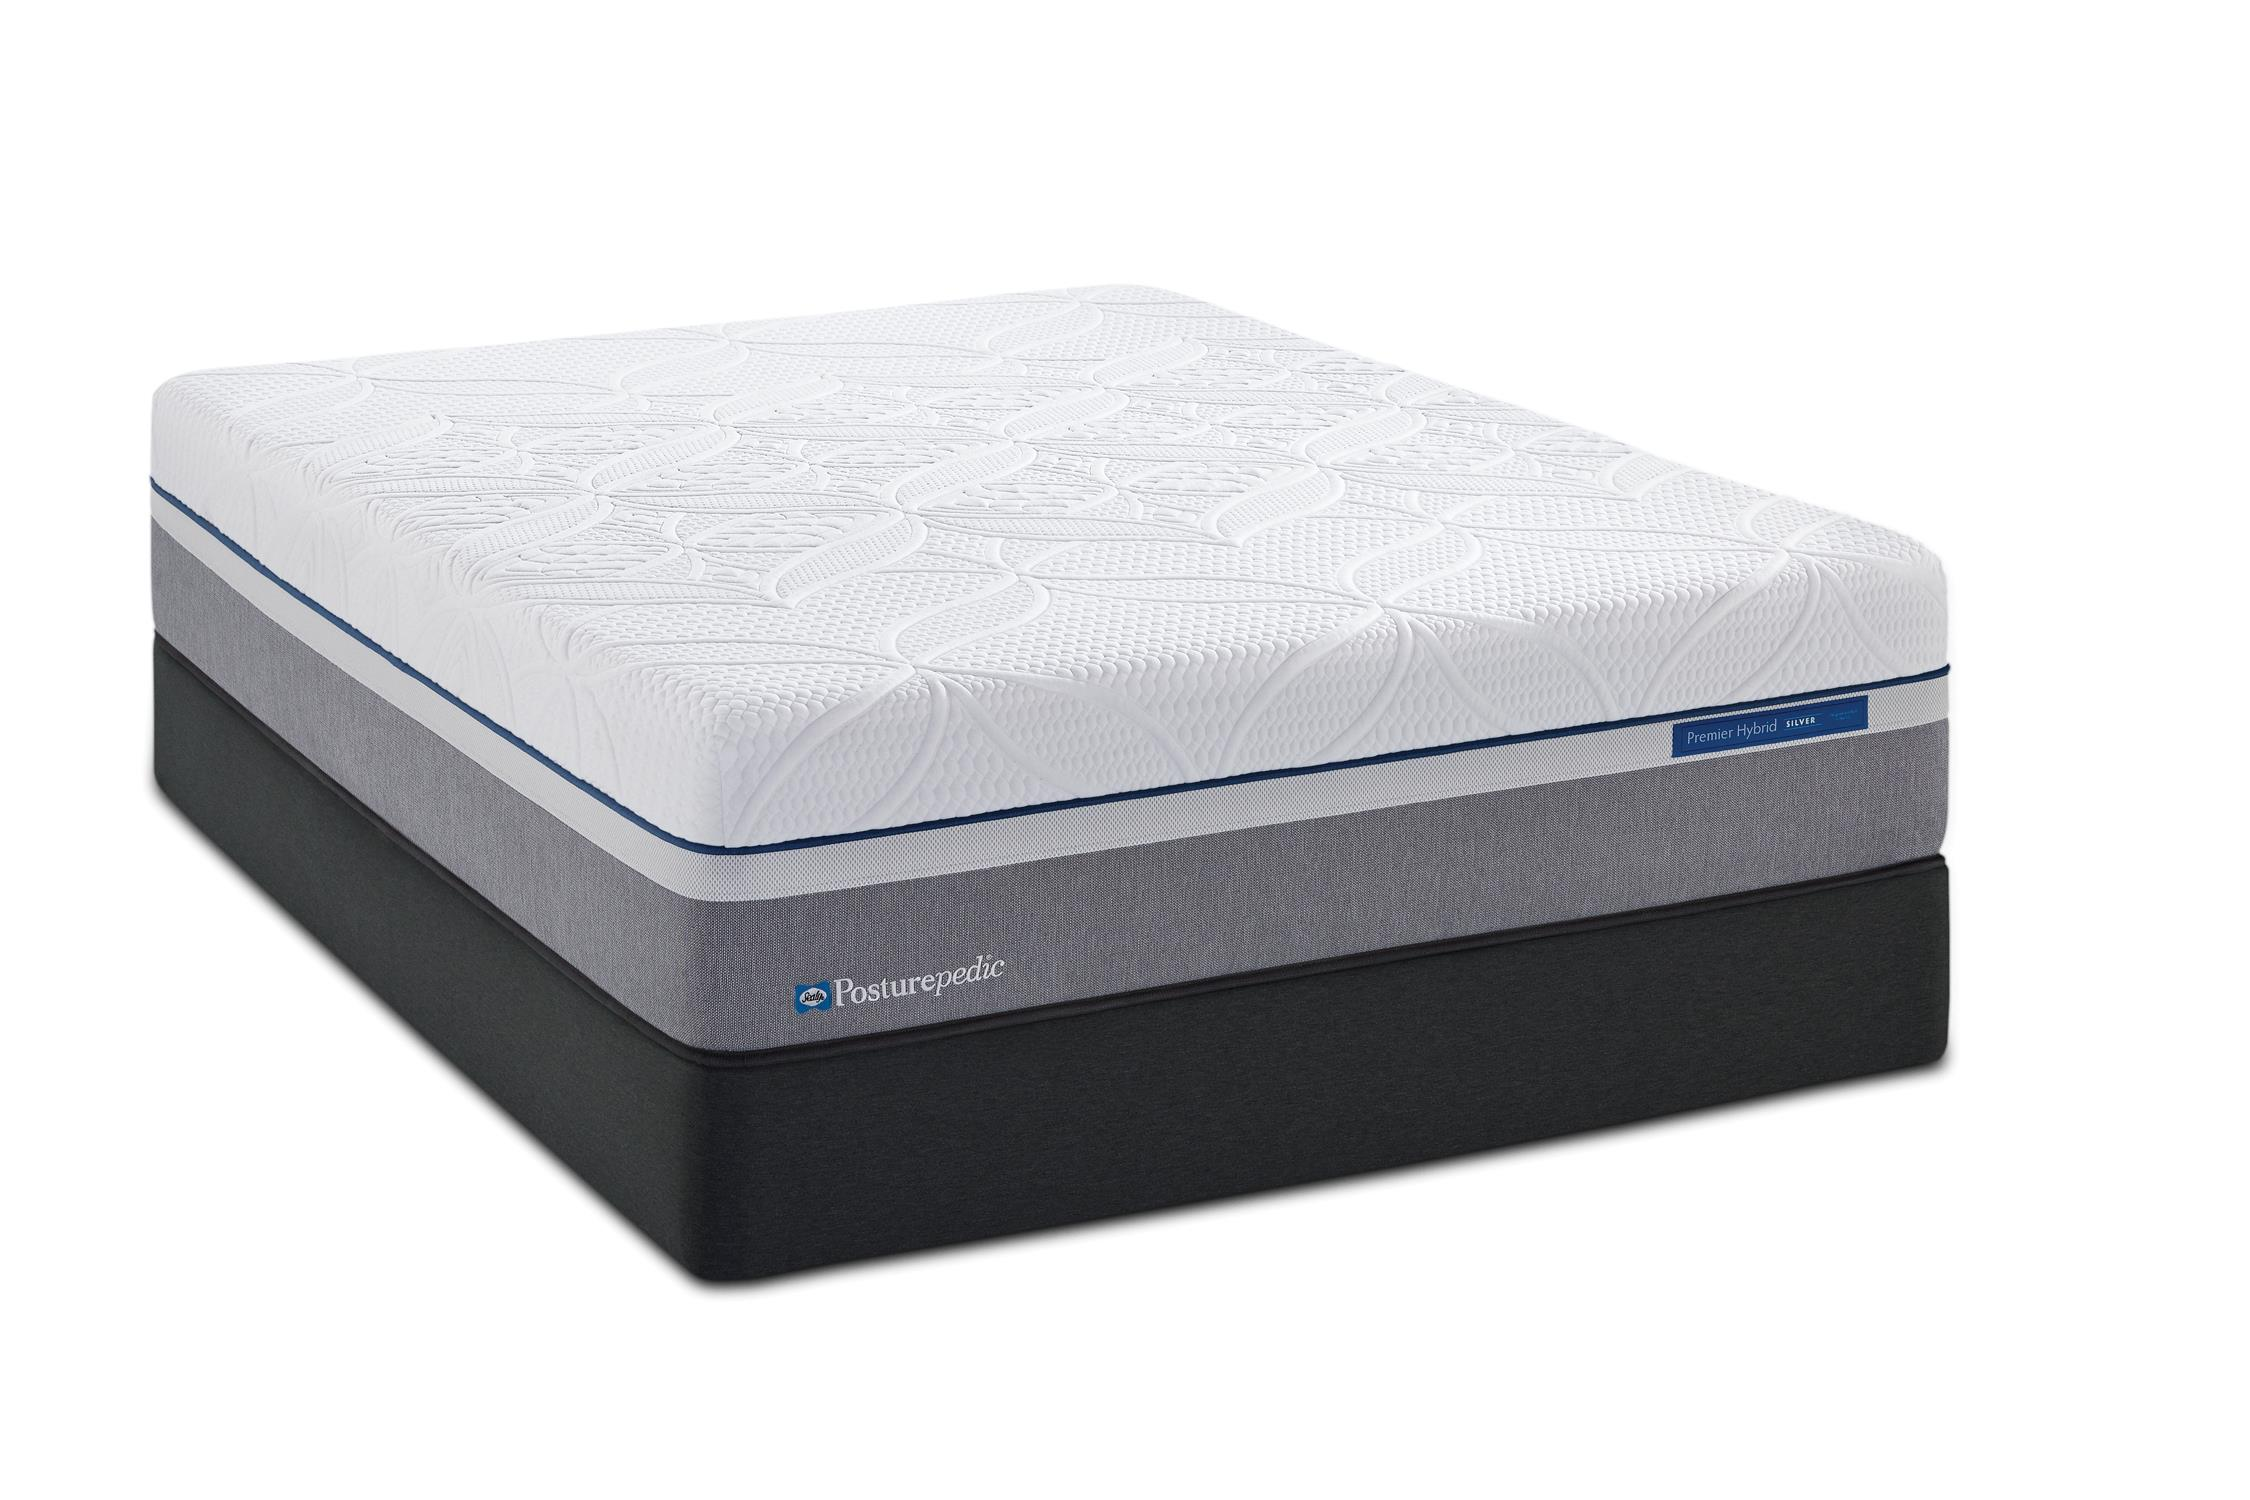 Sealy Posture Pedic Hybrid Gold Full Ultra Plush Mattress Set, Adj - Item Number: UltraPlushHybd-F+Ease-F